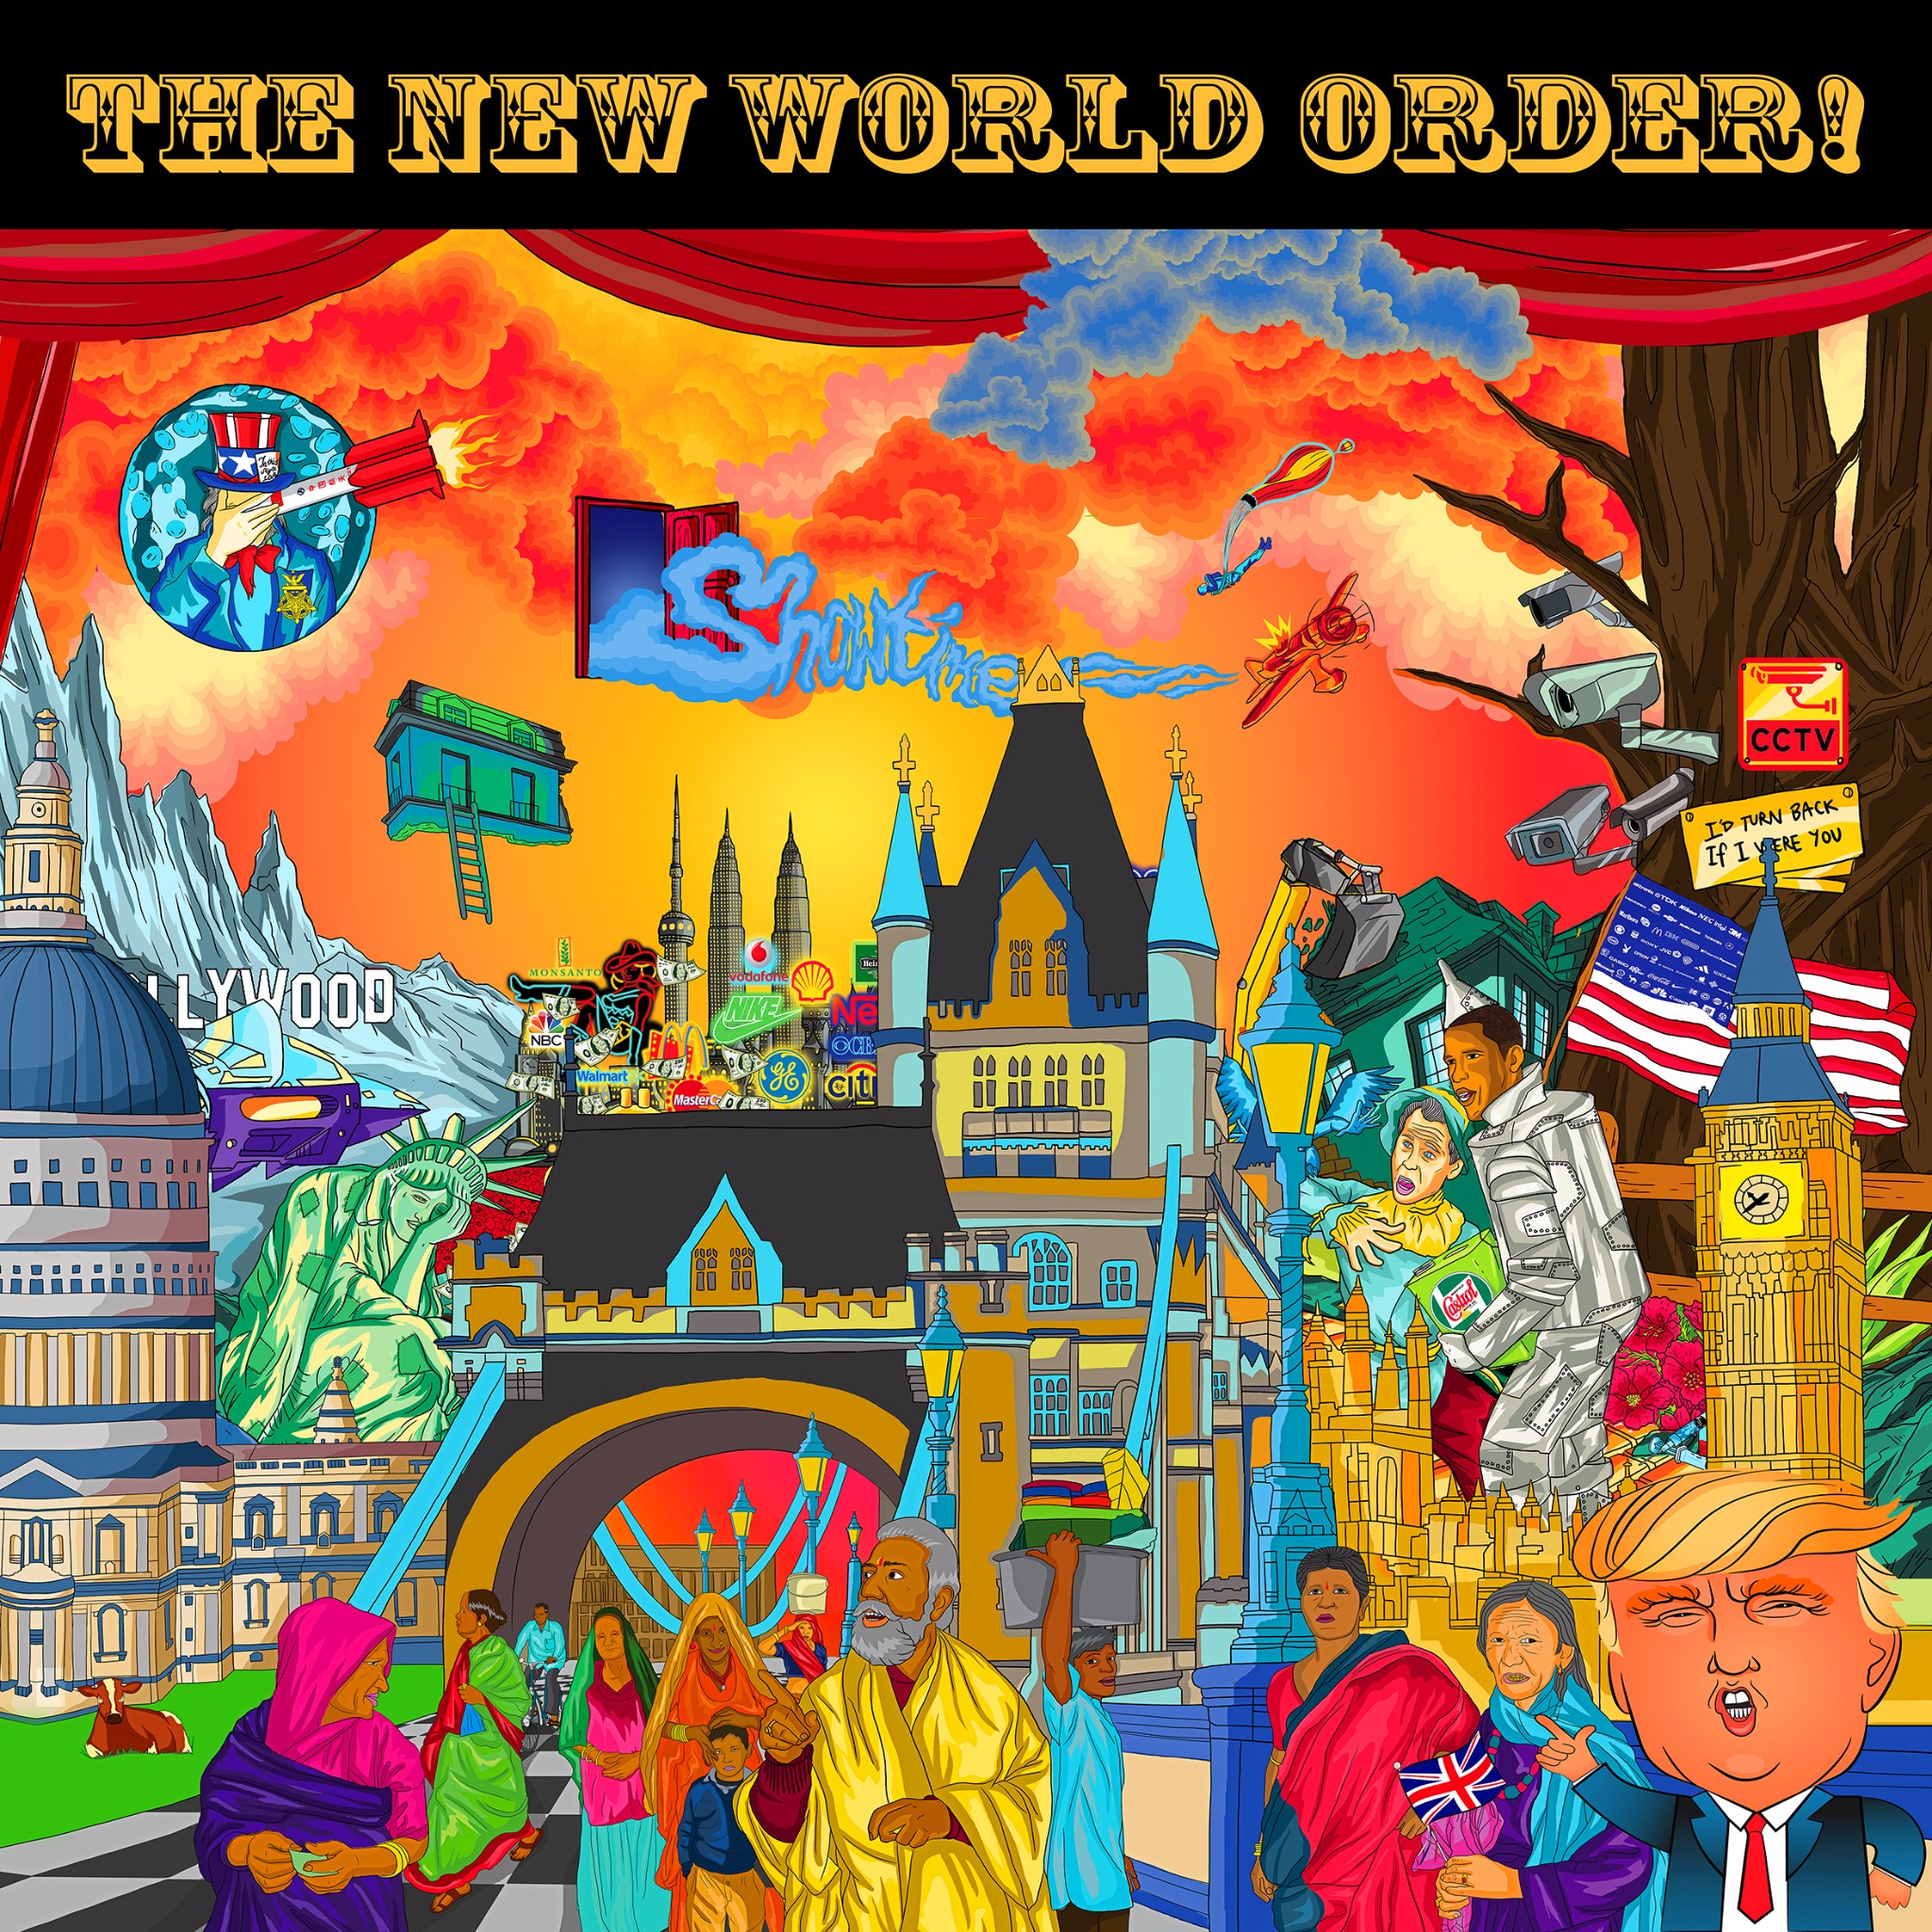 'NEW WORLD ORDER'